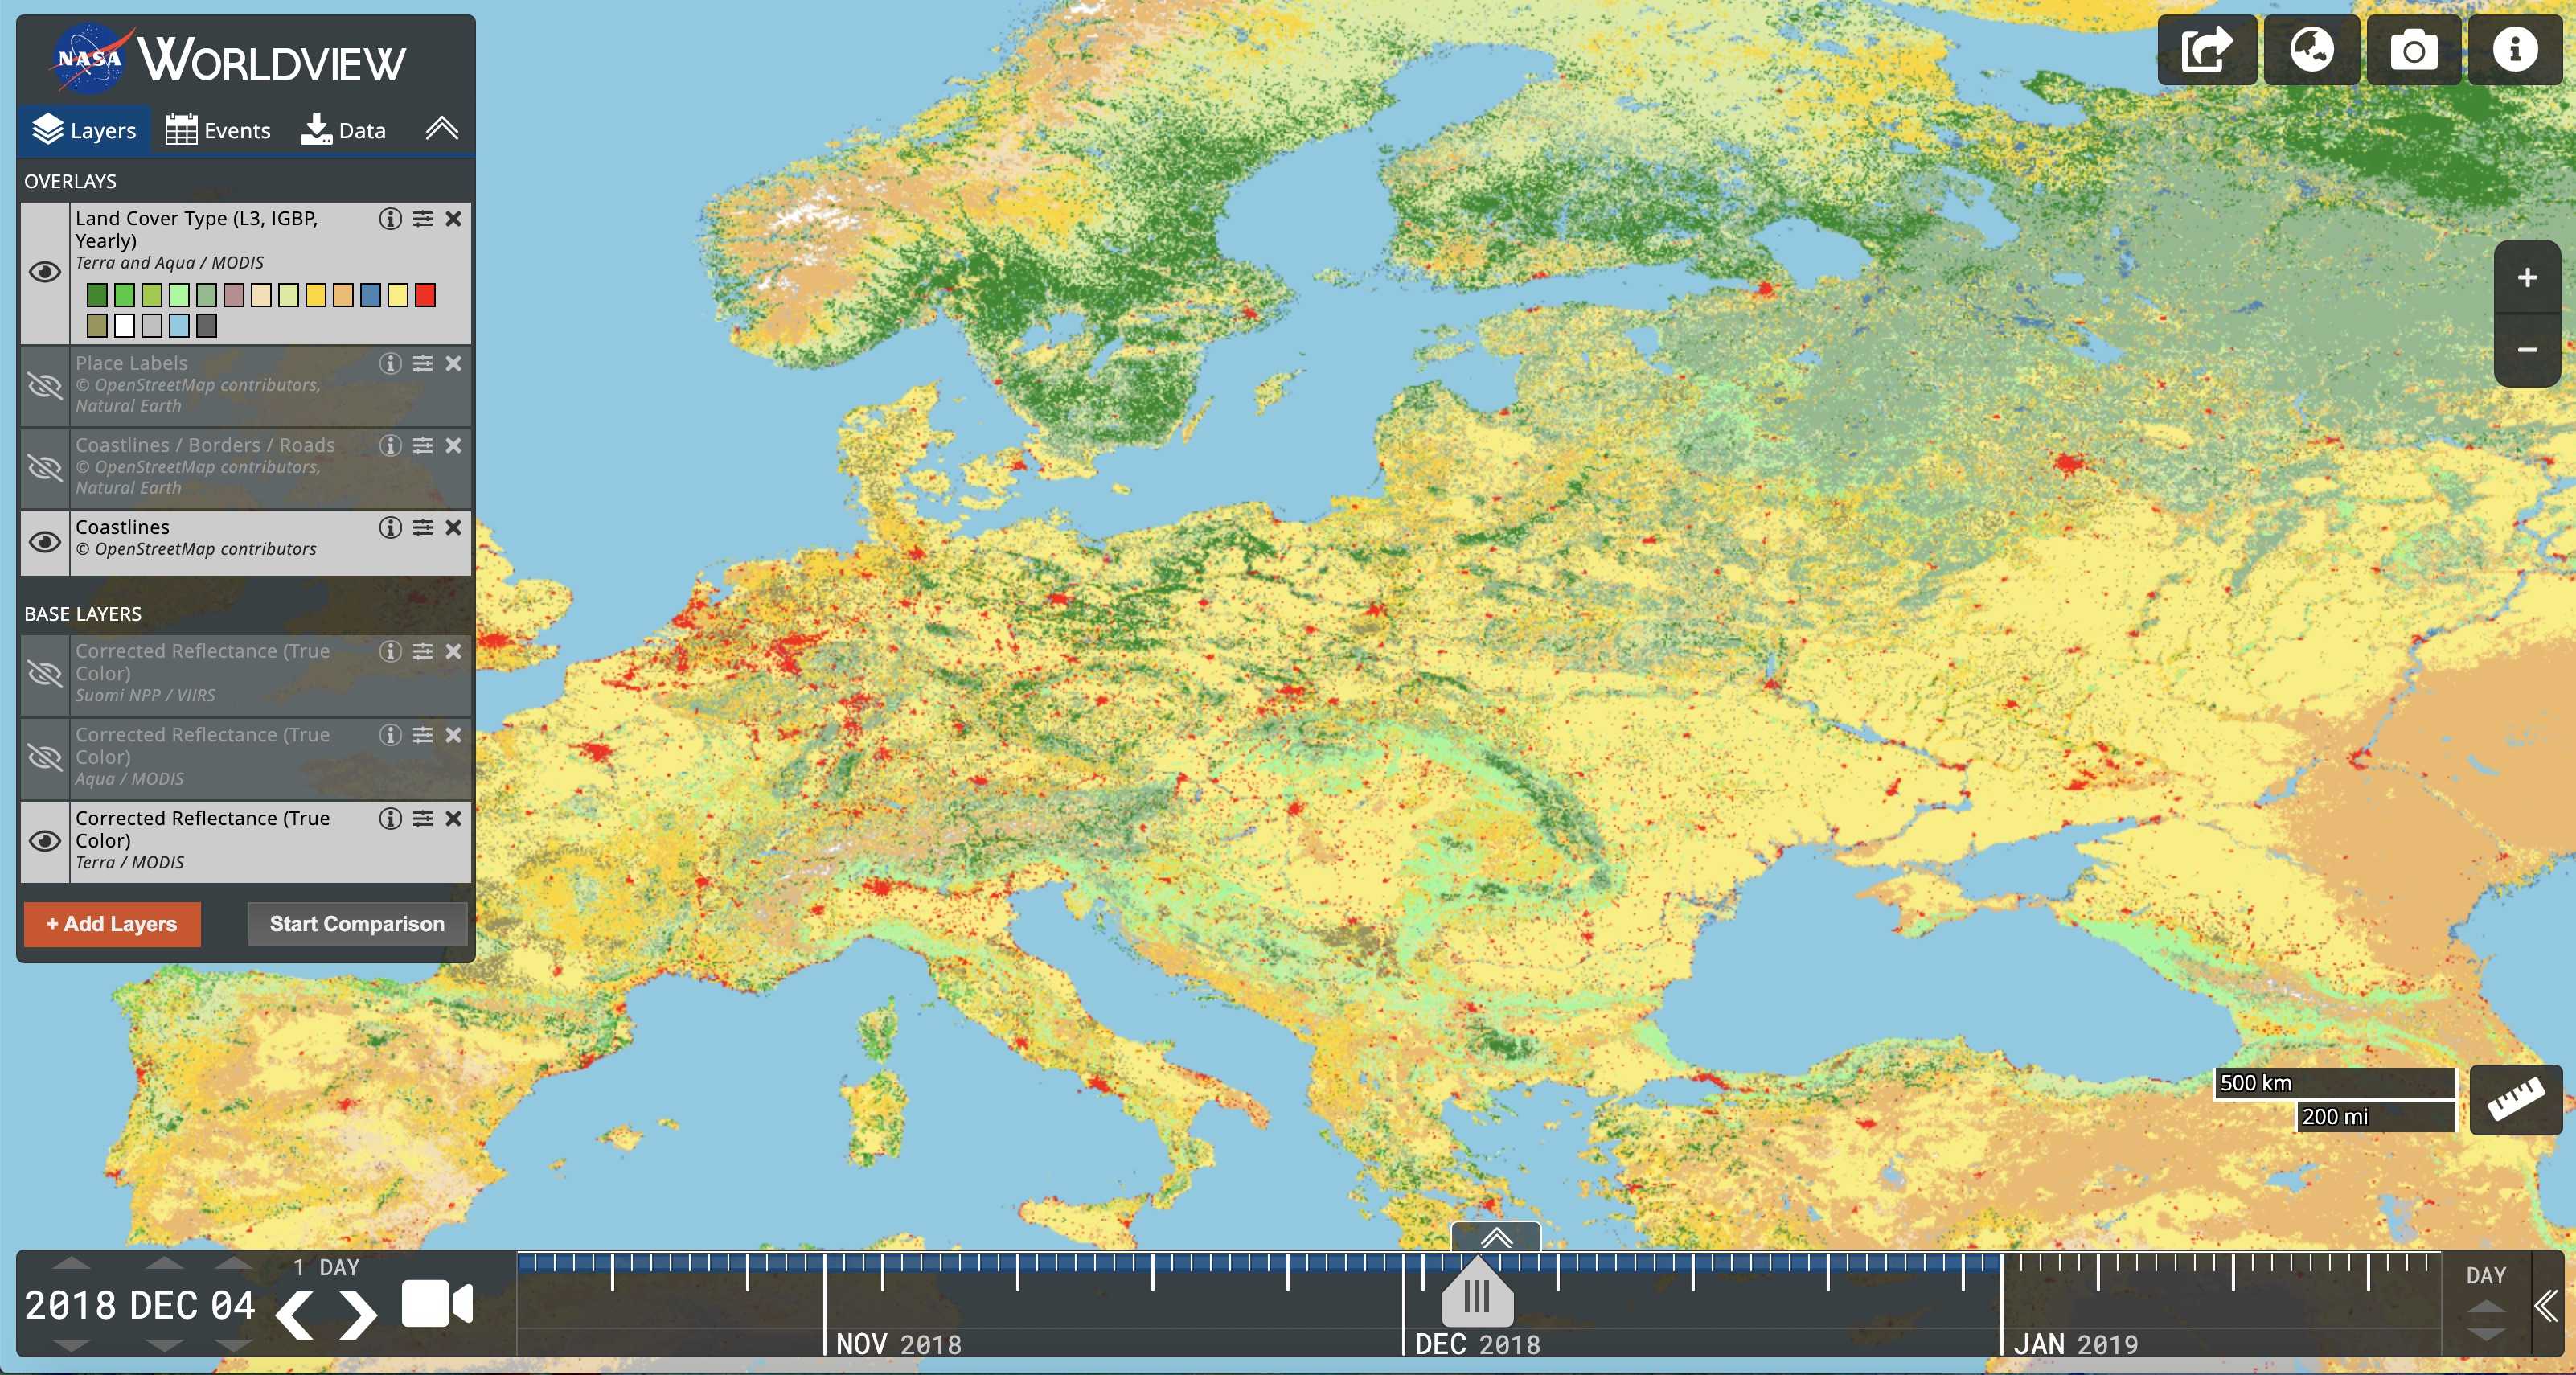 Terra and Aqua Moderate resolution Imaging Spectroradiometer (MODIS) Land Cover Type in Worldview